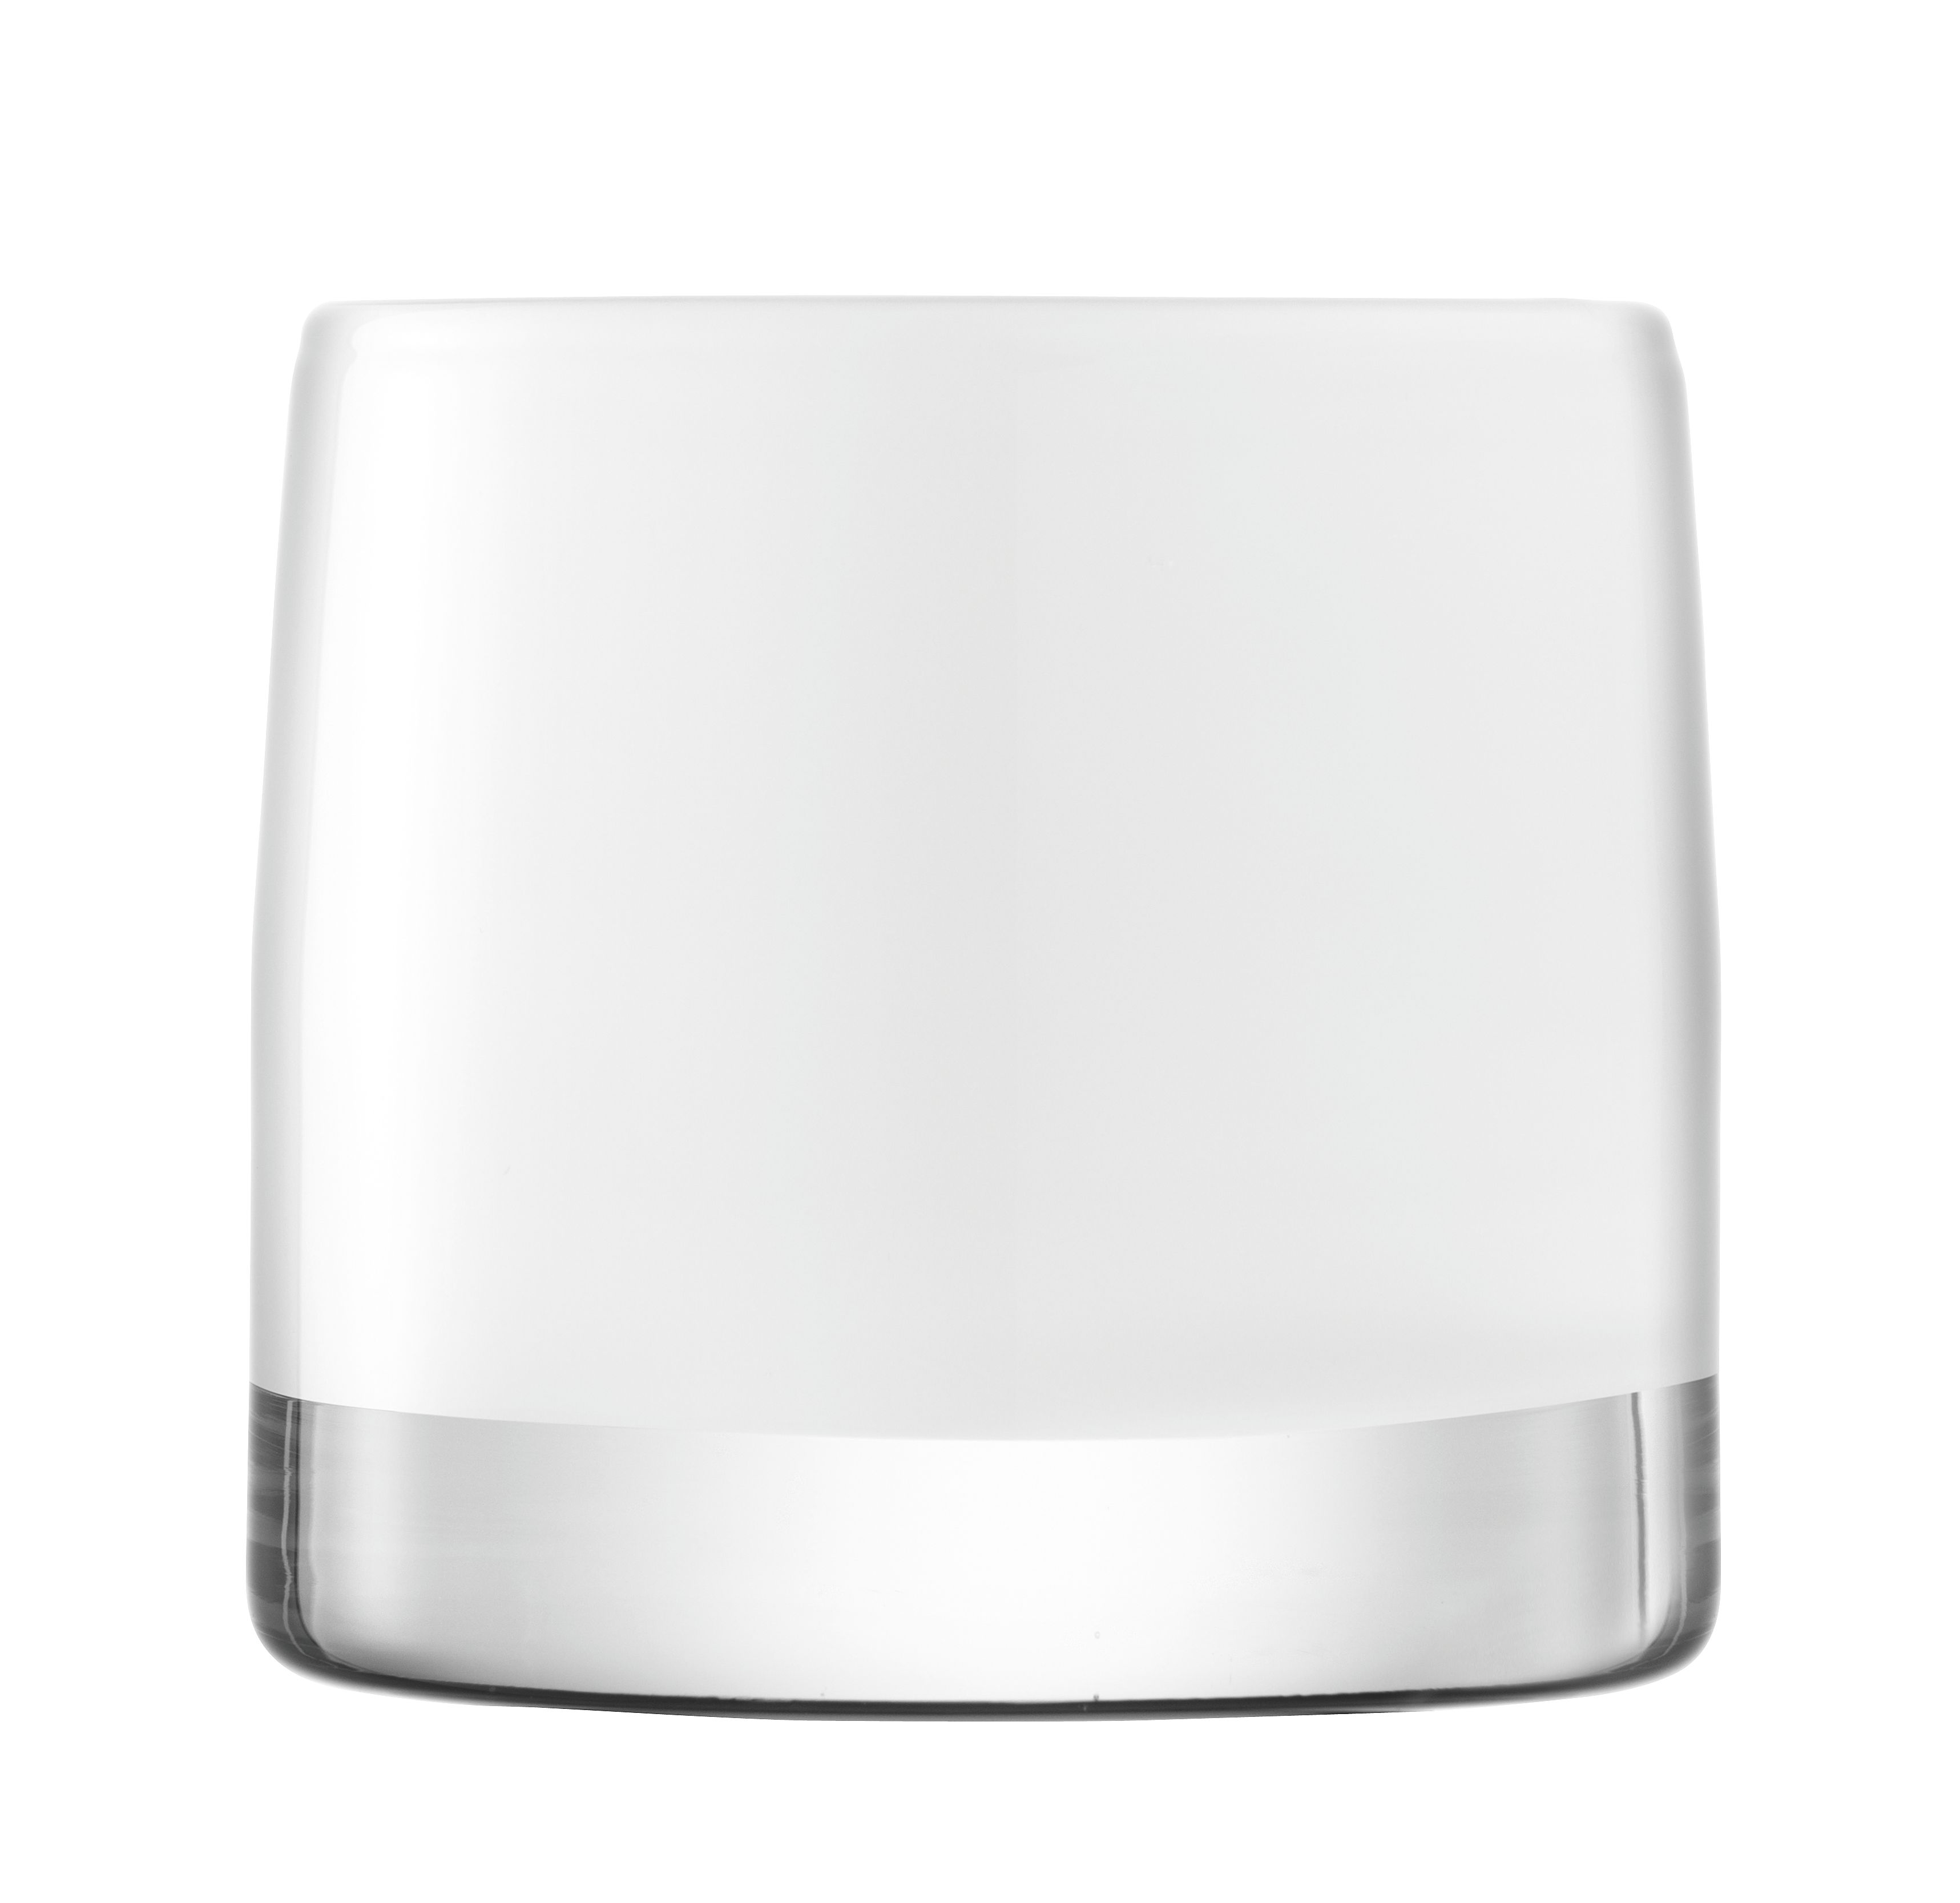 Tealight holder, white